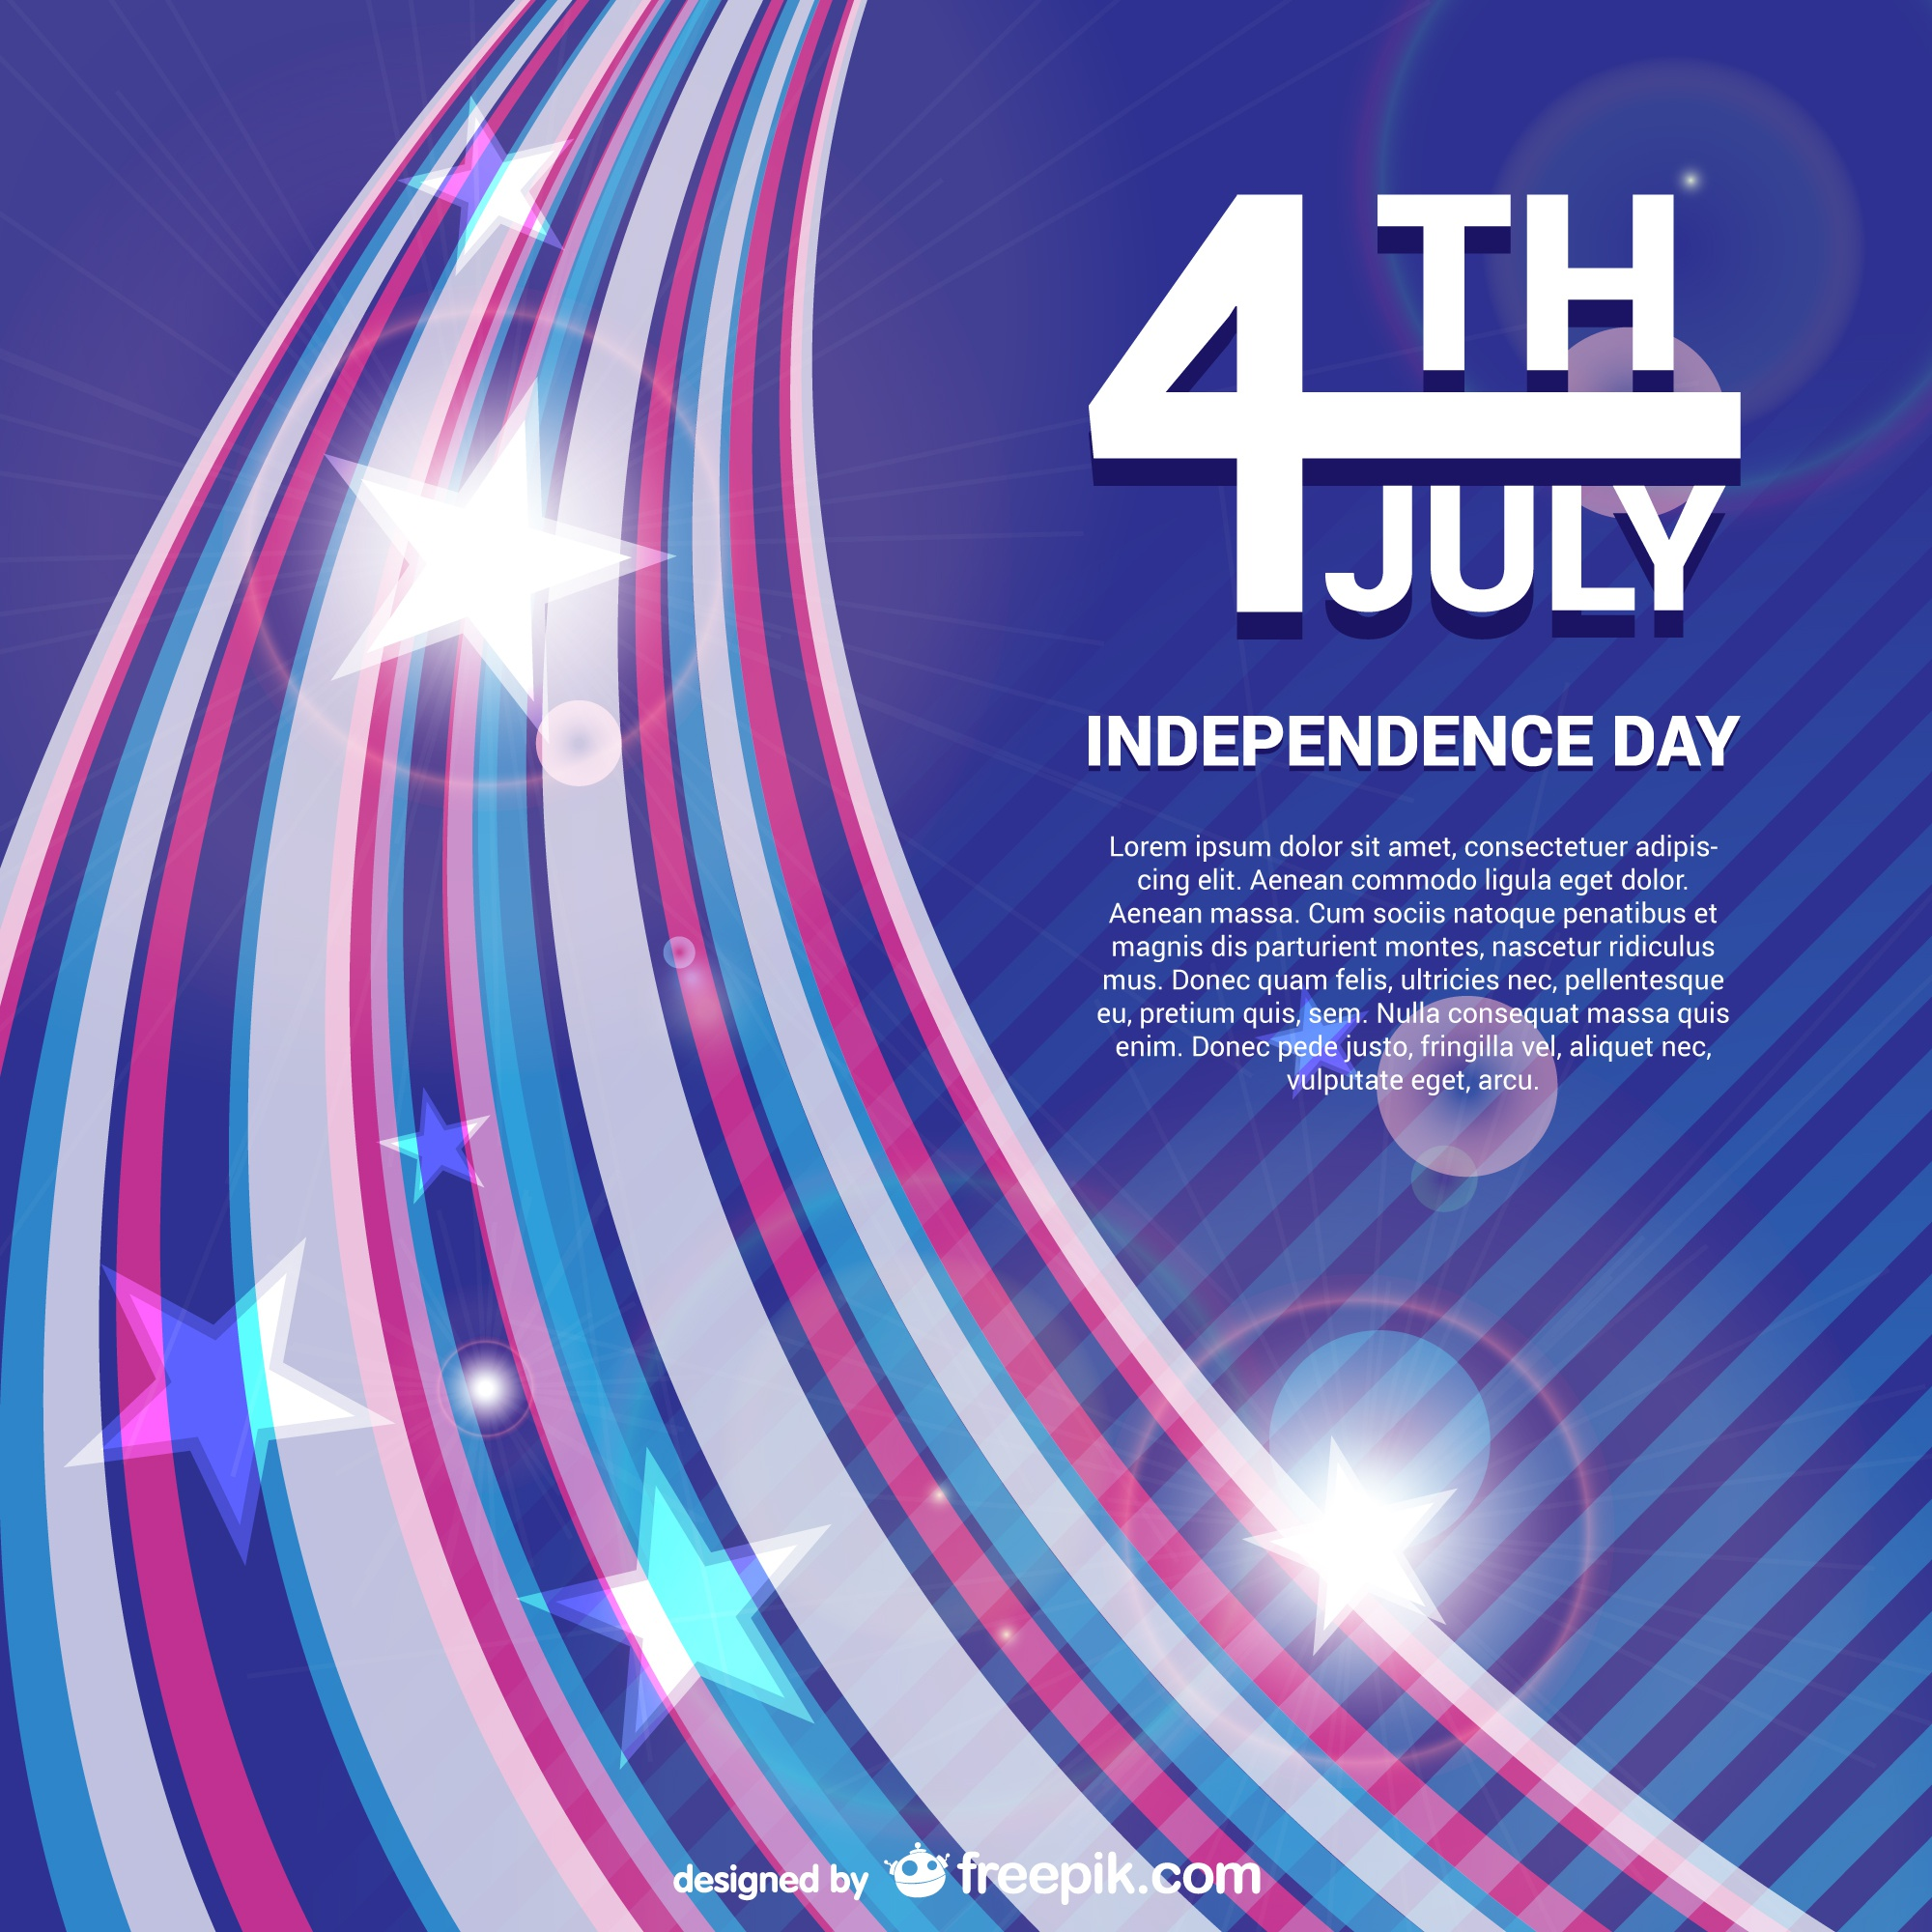 Independence day vector free background